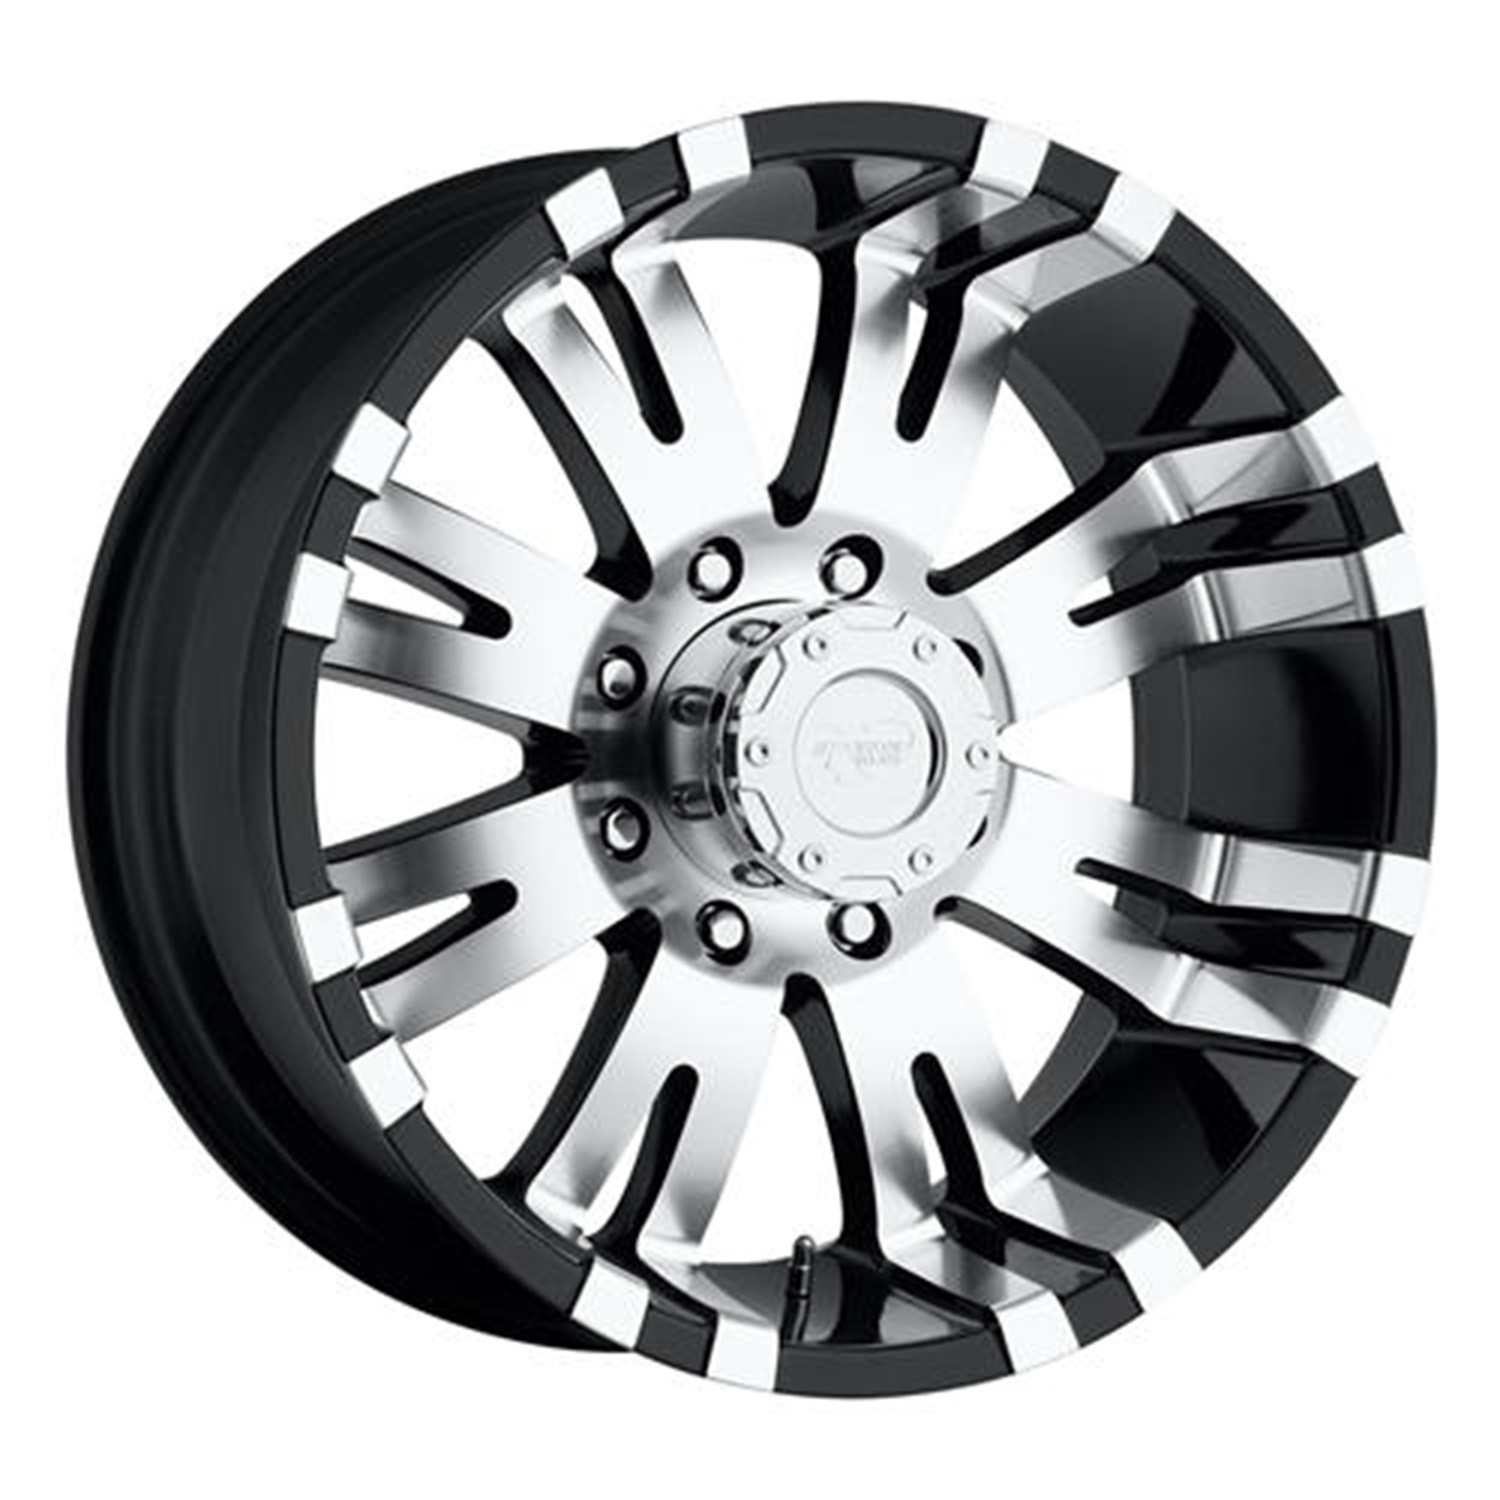 Pro Comp Alloy 81017985 Xtreme Alloys Series 8101 Gloss Black w/Machined Finish